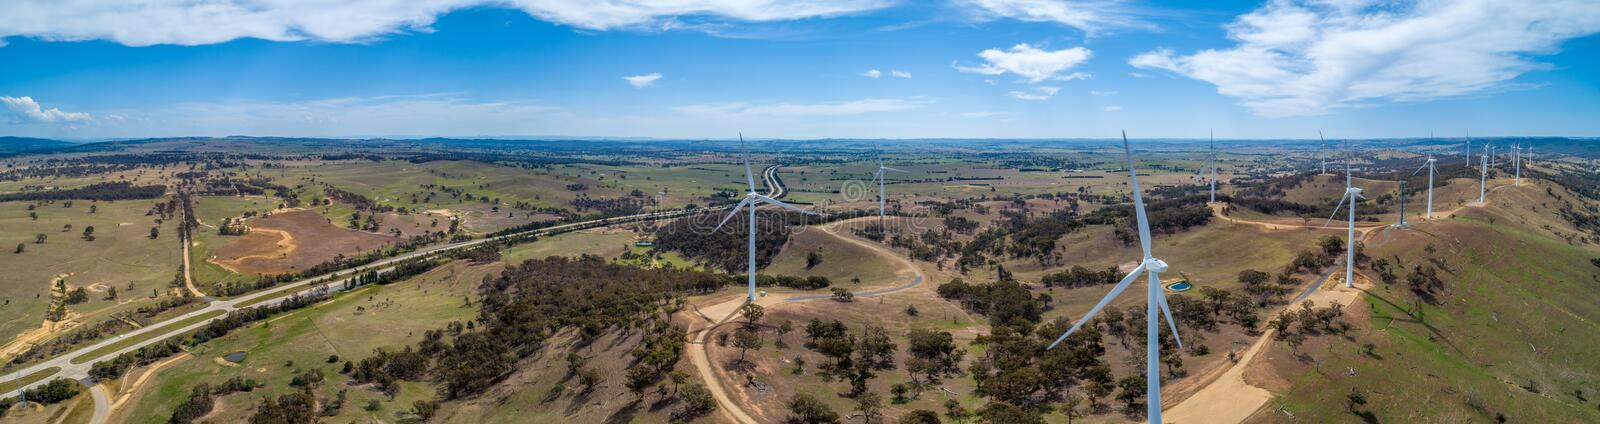 Panorama of Hume Highway and wind farm in beautiful Australian countryside. royalty free stock images